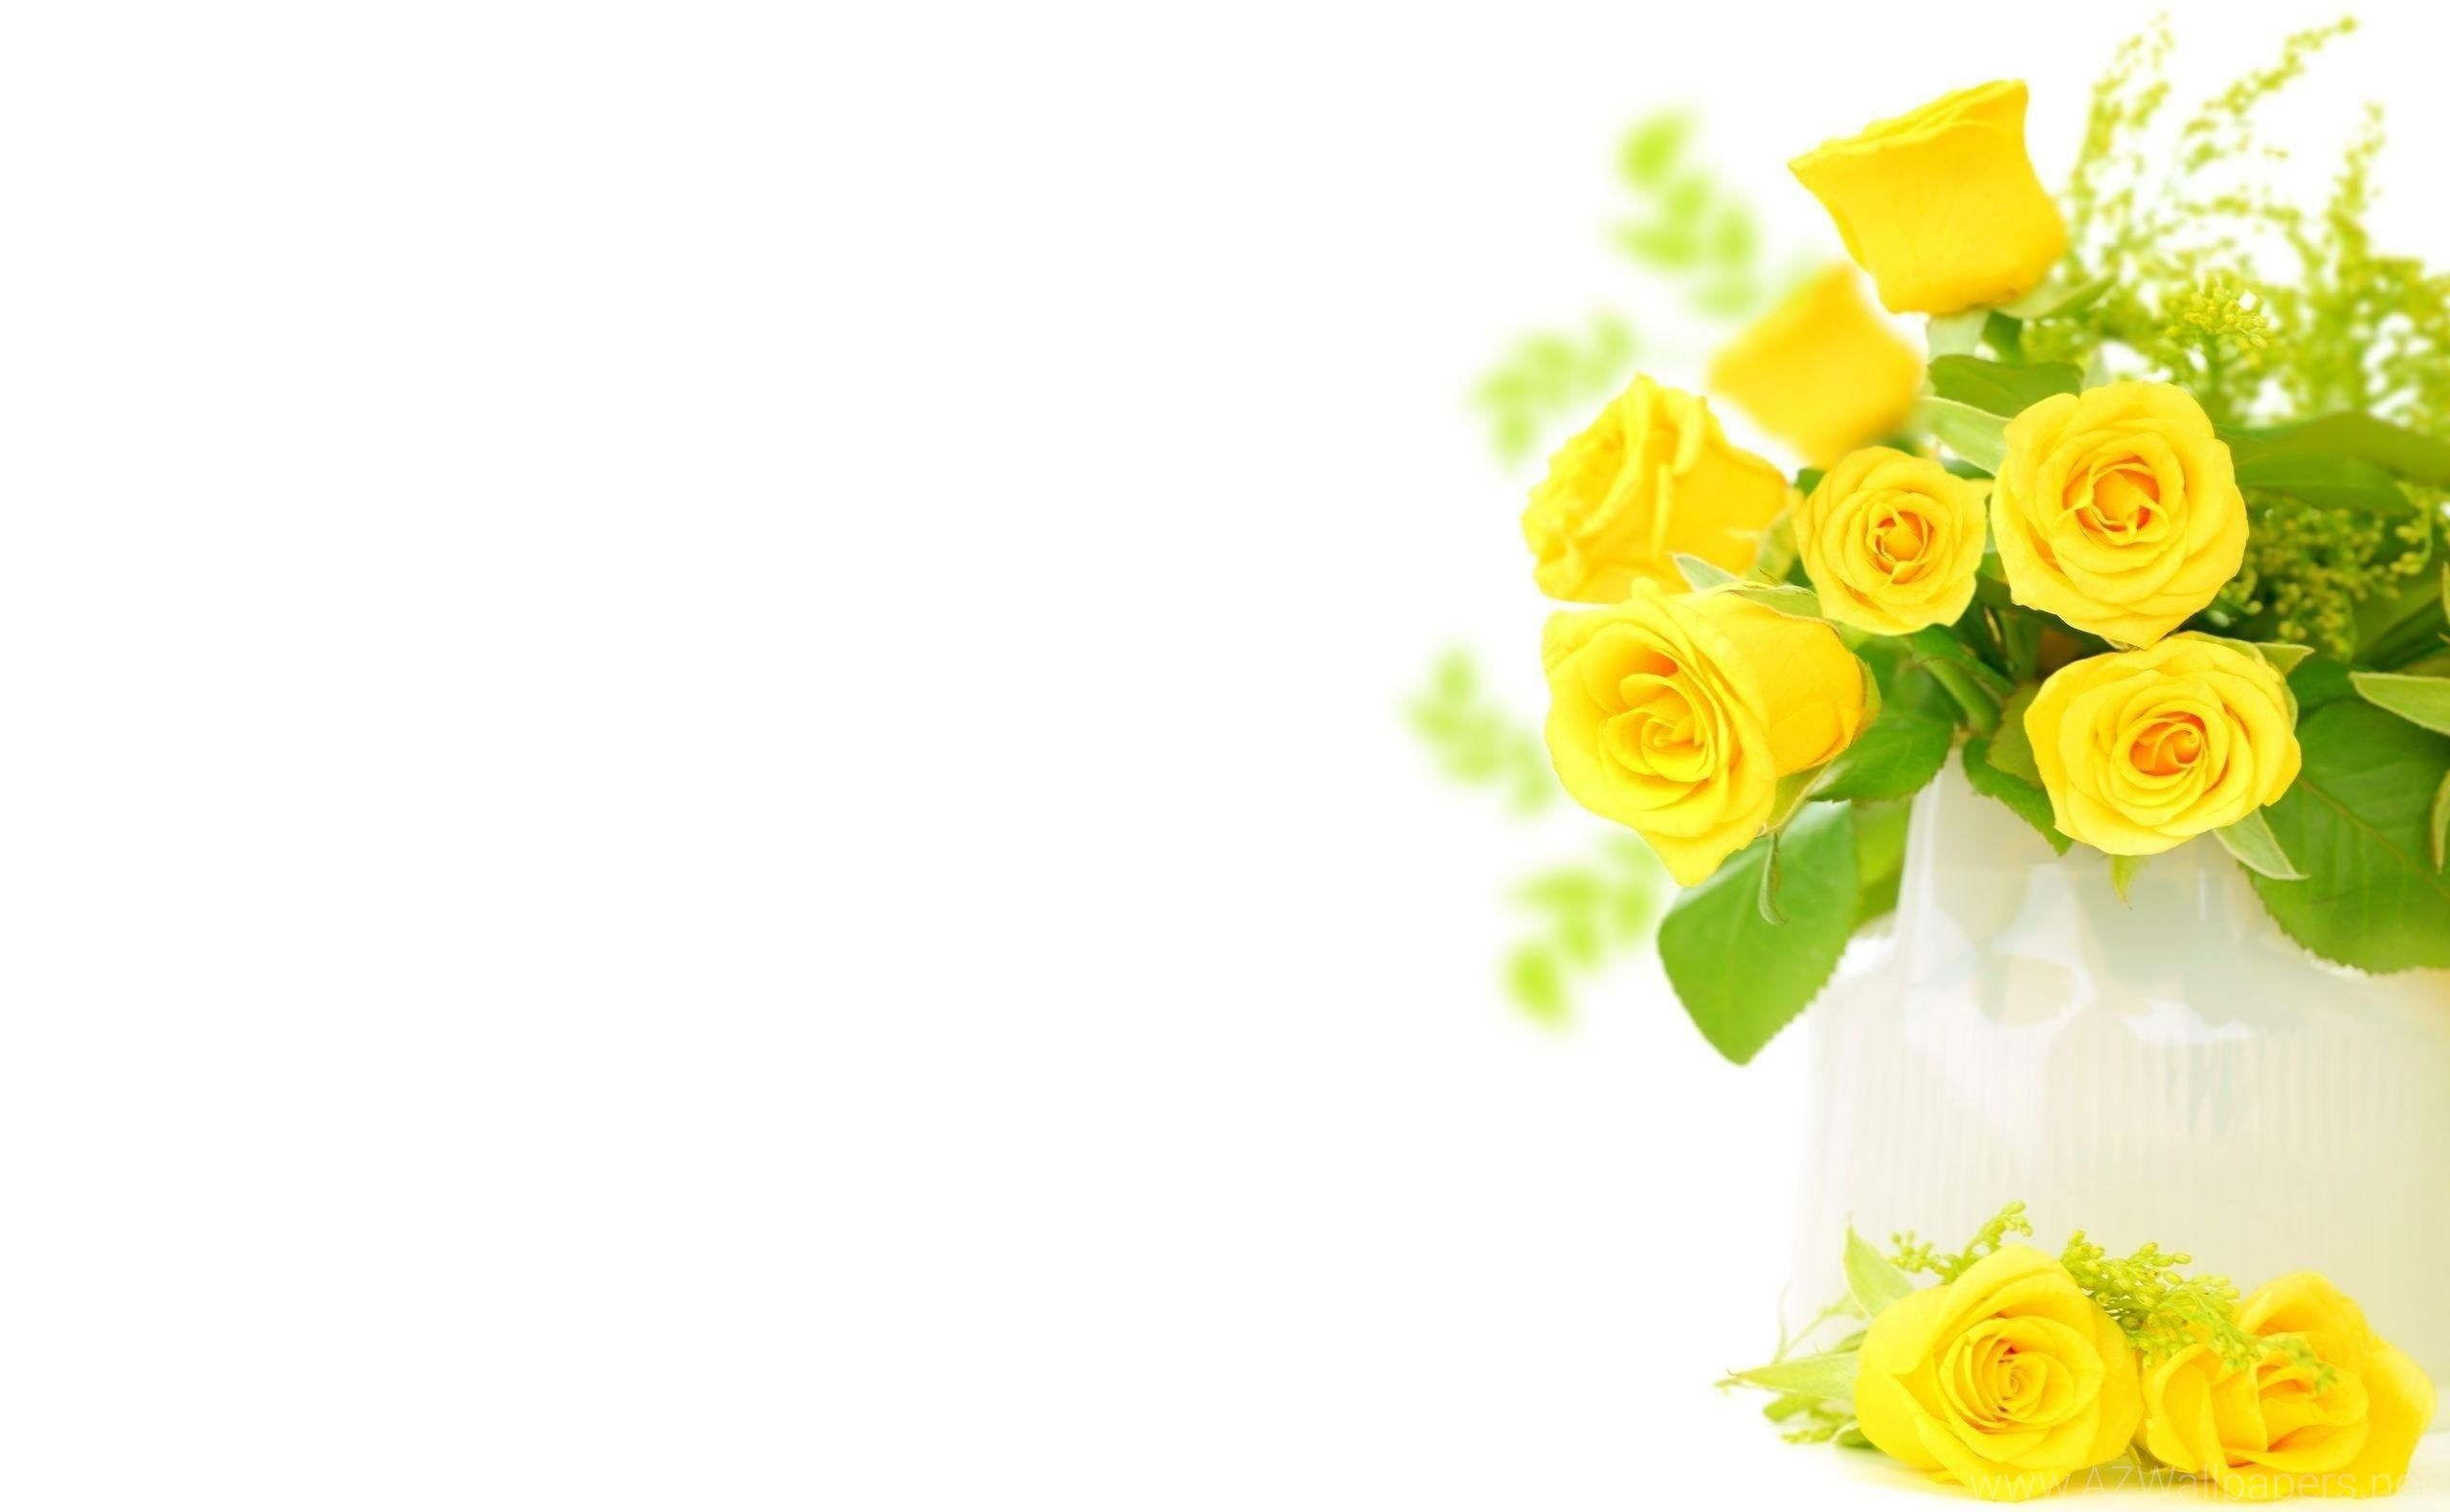 Yellow Roses Background Wallpaper | HD Wallpapers ...